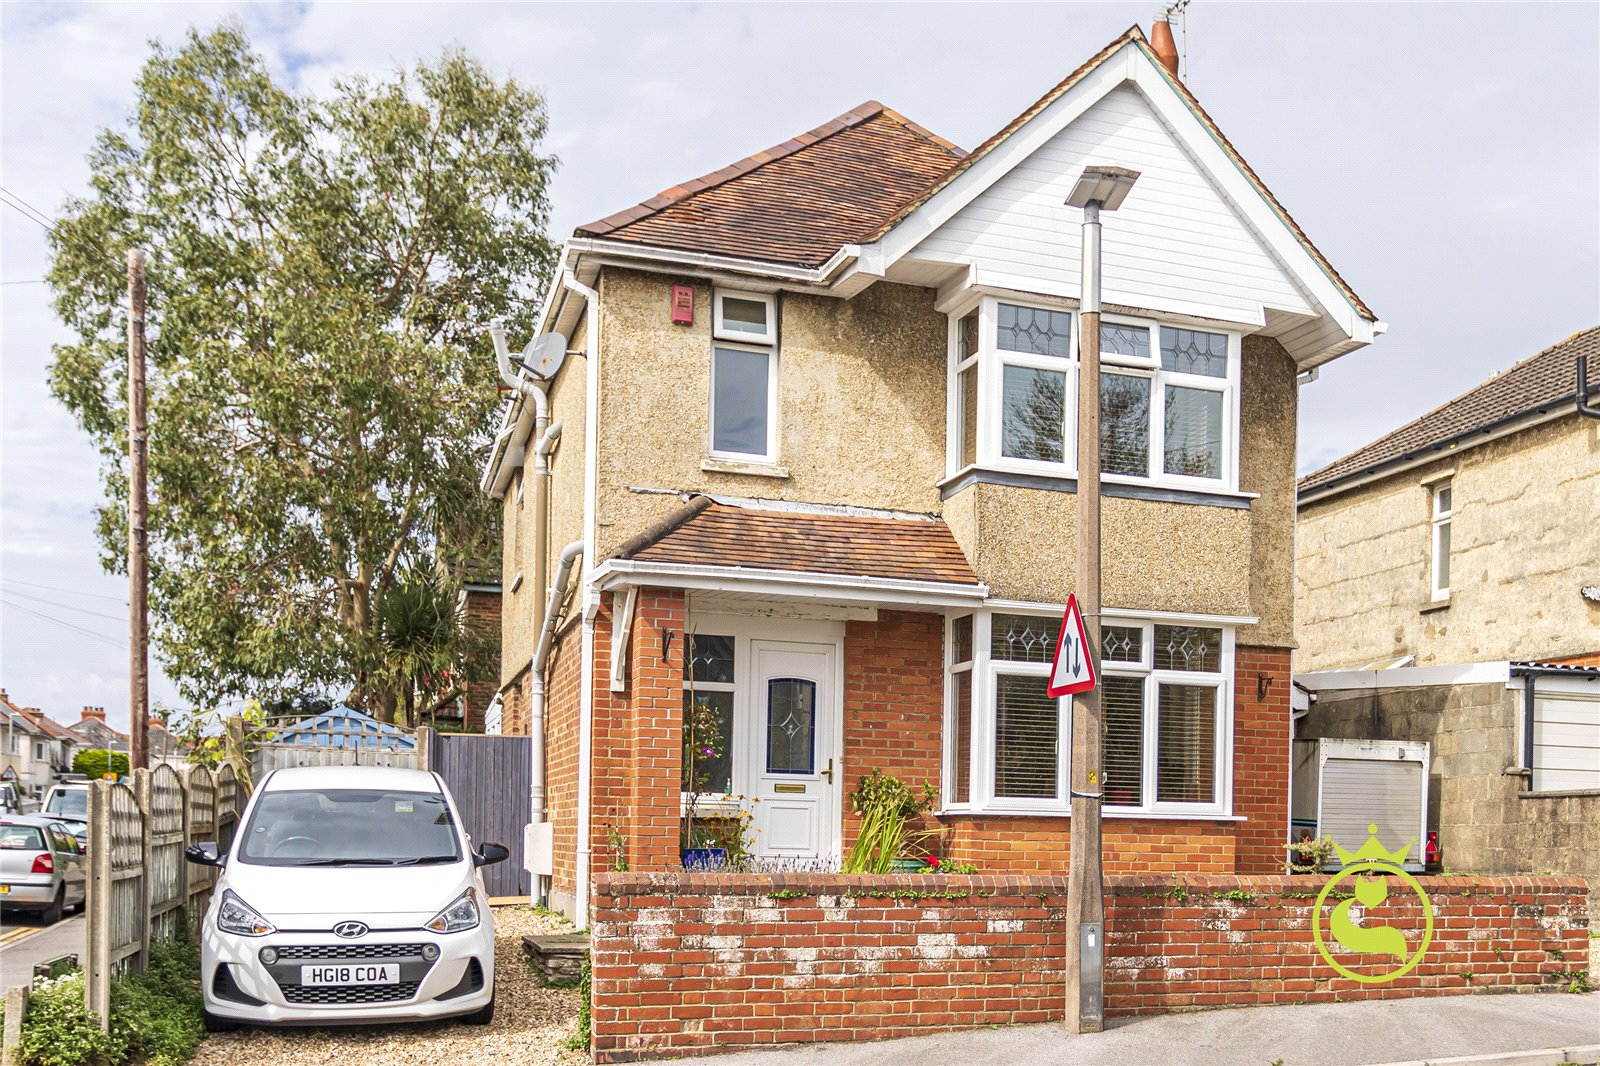 3 bed house for sale in Hardy Road, Lower Parkstone 0